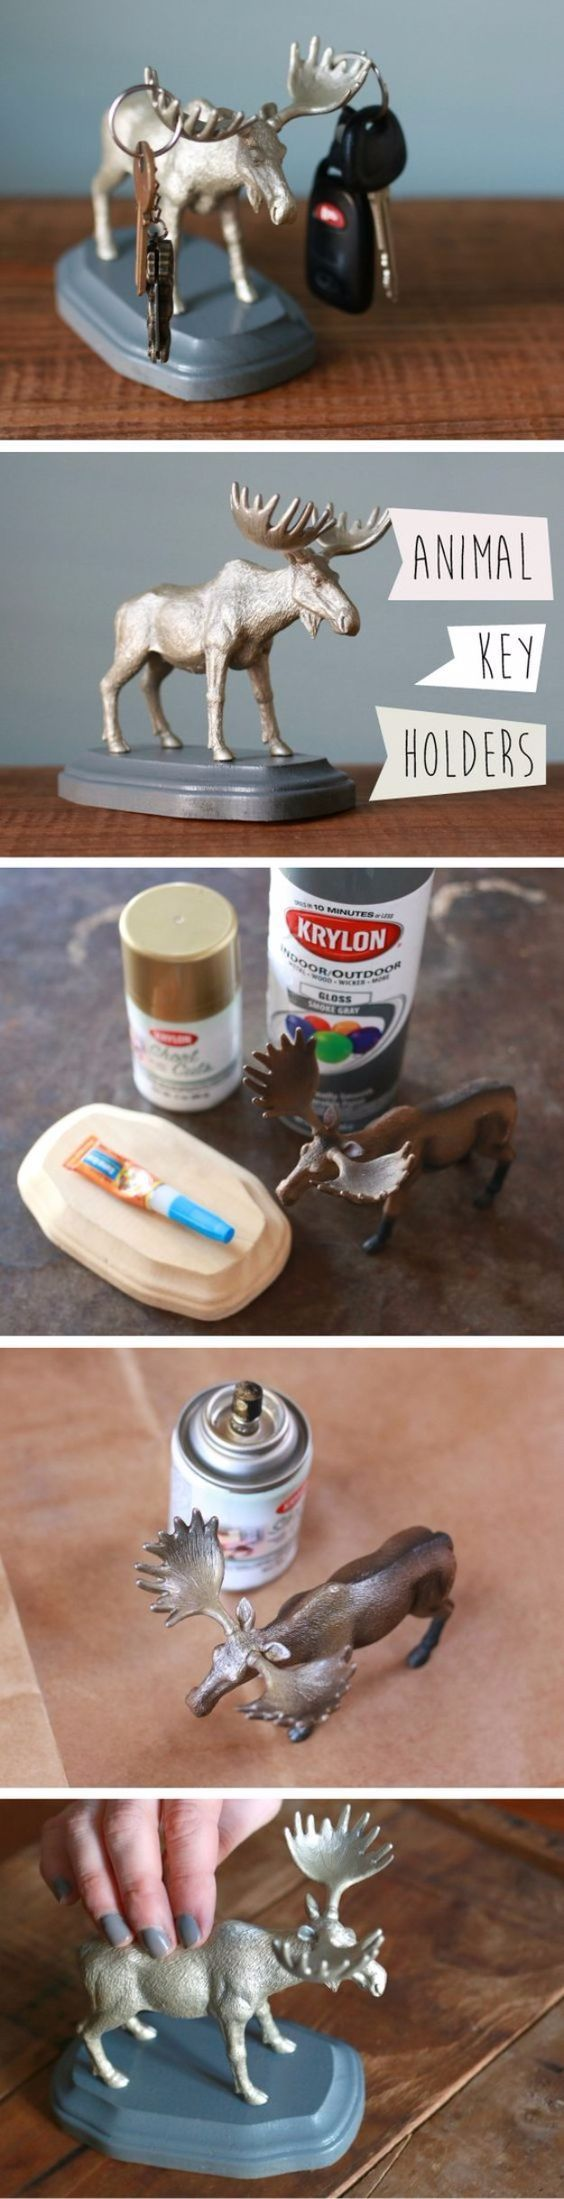 Easy Crafts To Make and Sell - Animal Key Holders - Cool Homemade Craft Projects You Can Sell On Etsy, at Craft Fairs, Online and in Stores. Quick and Cheap DIY Ideas that Adults and Even Teens Can Ma (Diy Projects To Sell)